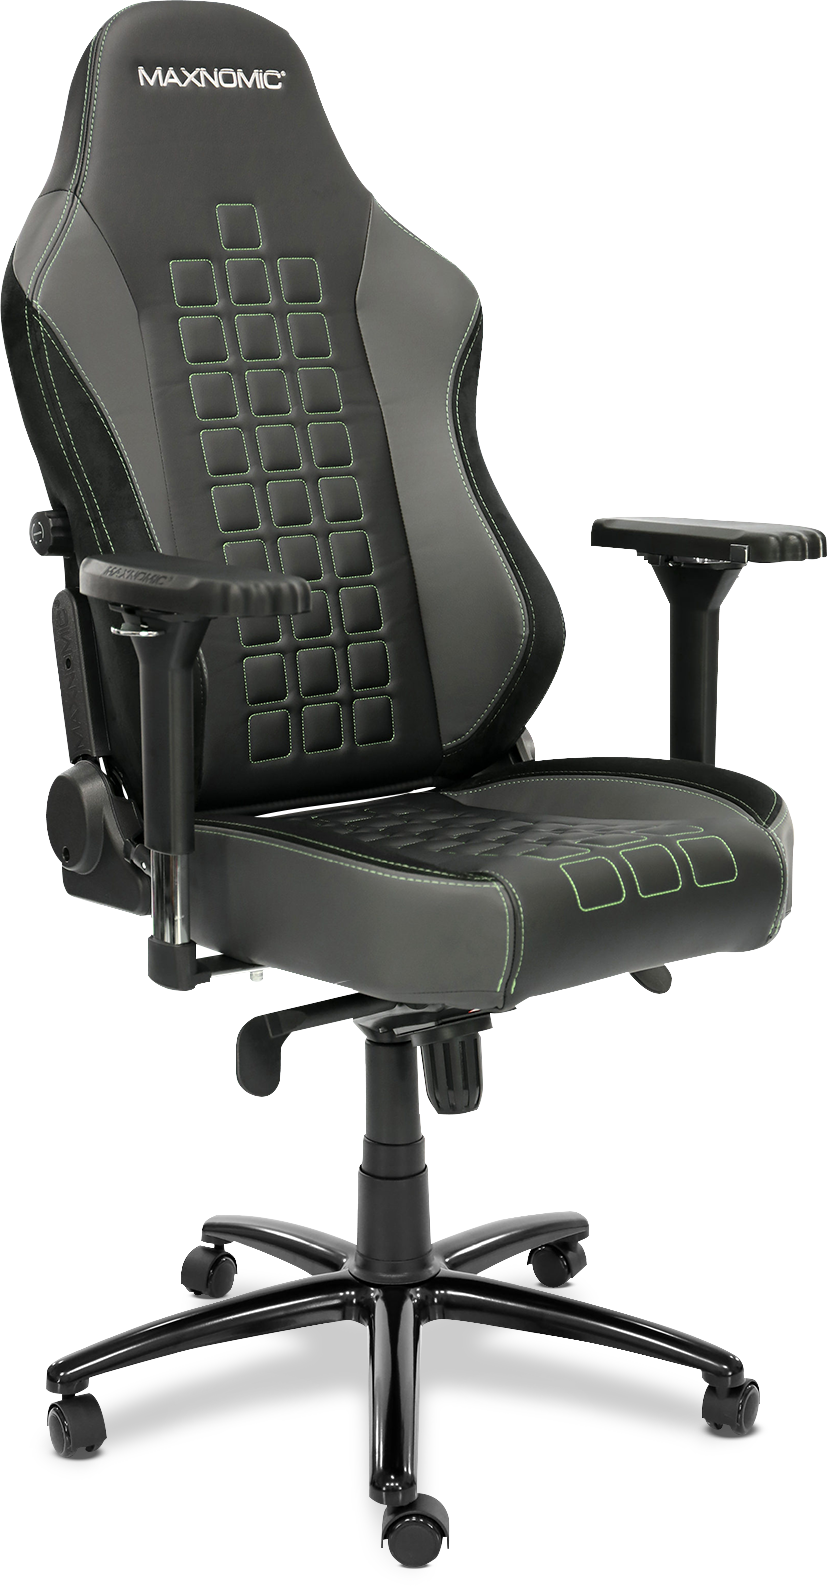 RE2MJVy?ver=f28d - MAXNOMIC Quadceptor Office Comfort